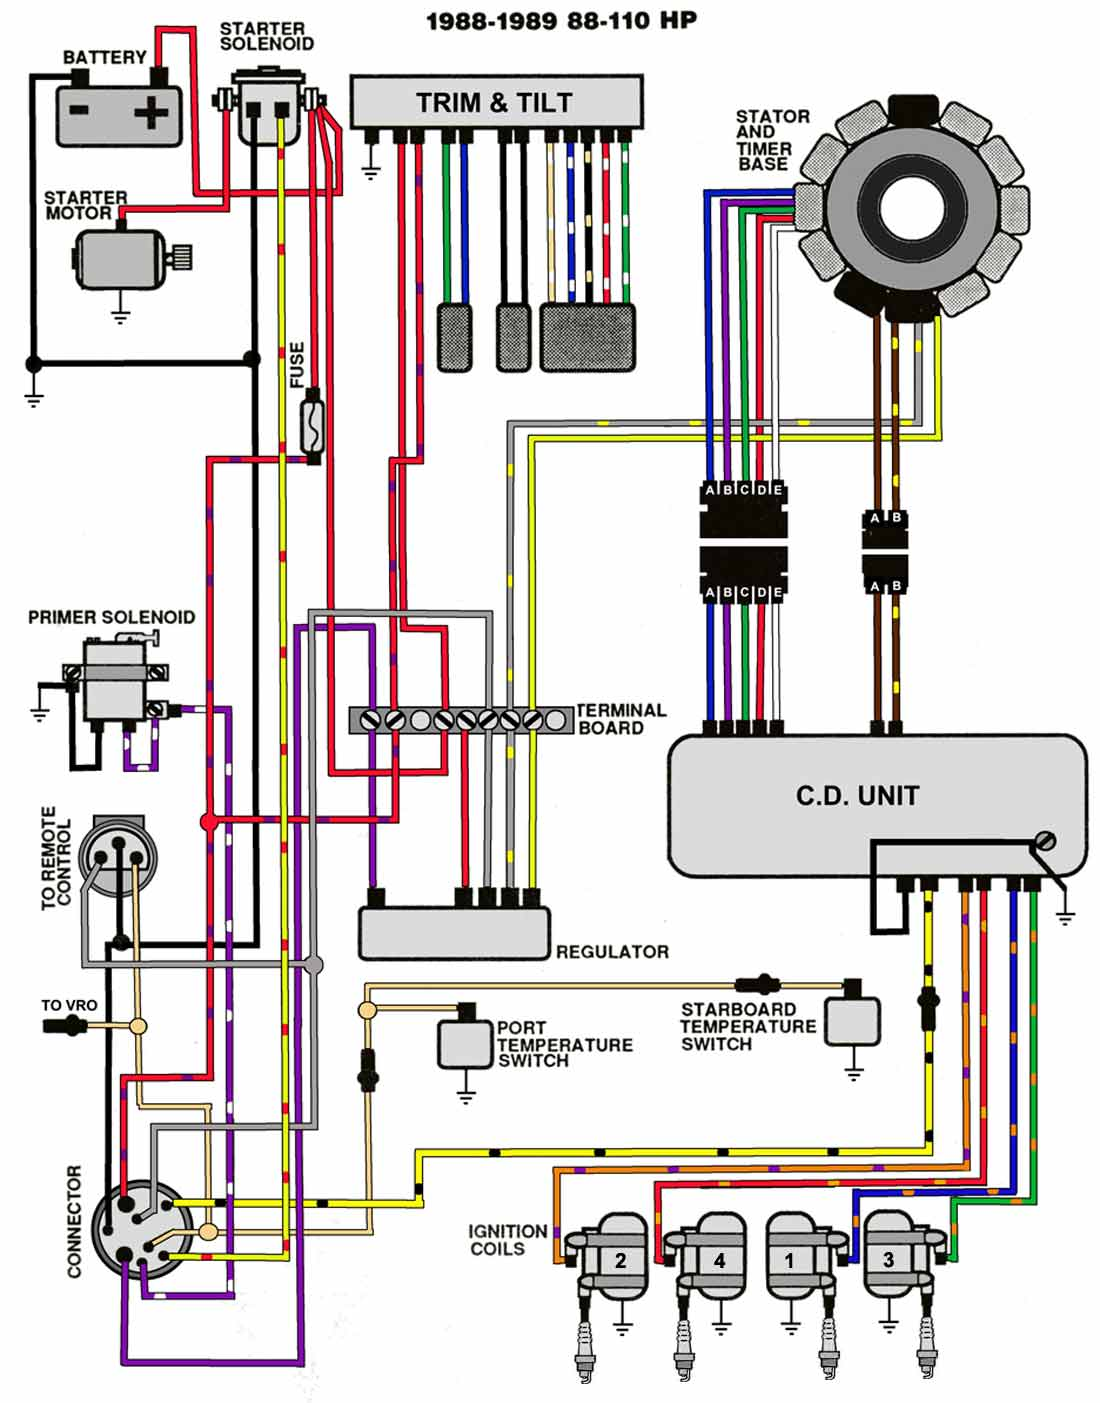 john deere l120 automatic wiring diagram two speed motor 3 phase 1990 mustang ignition switch best library v 4 88 110 hp